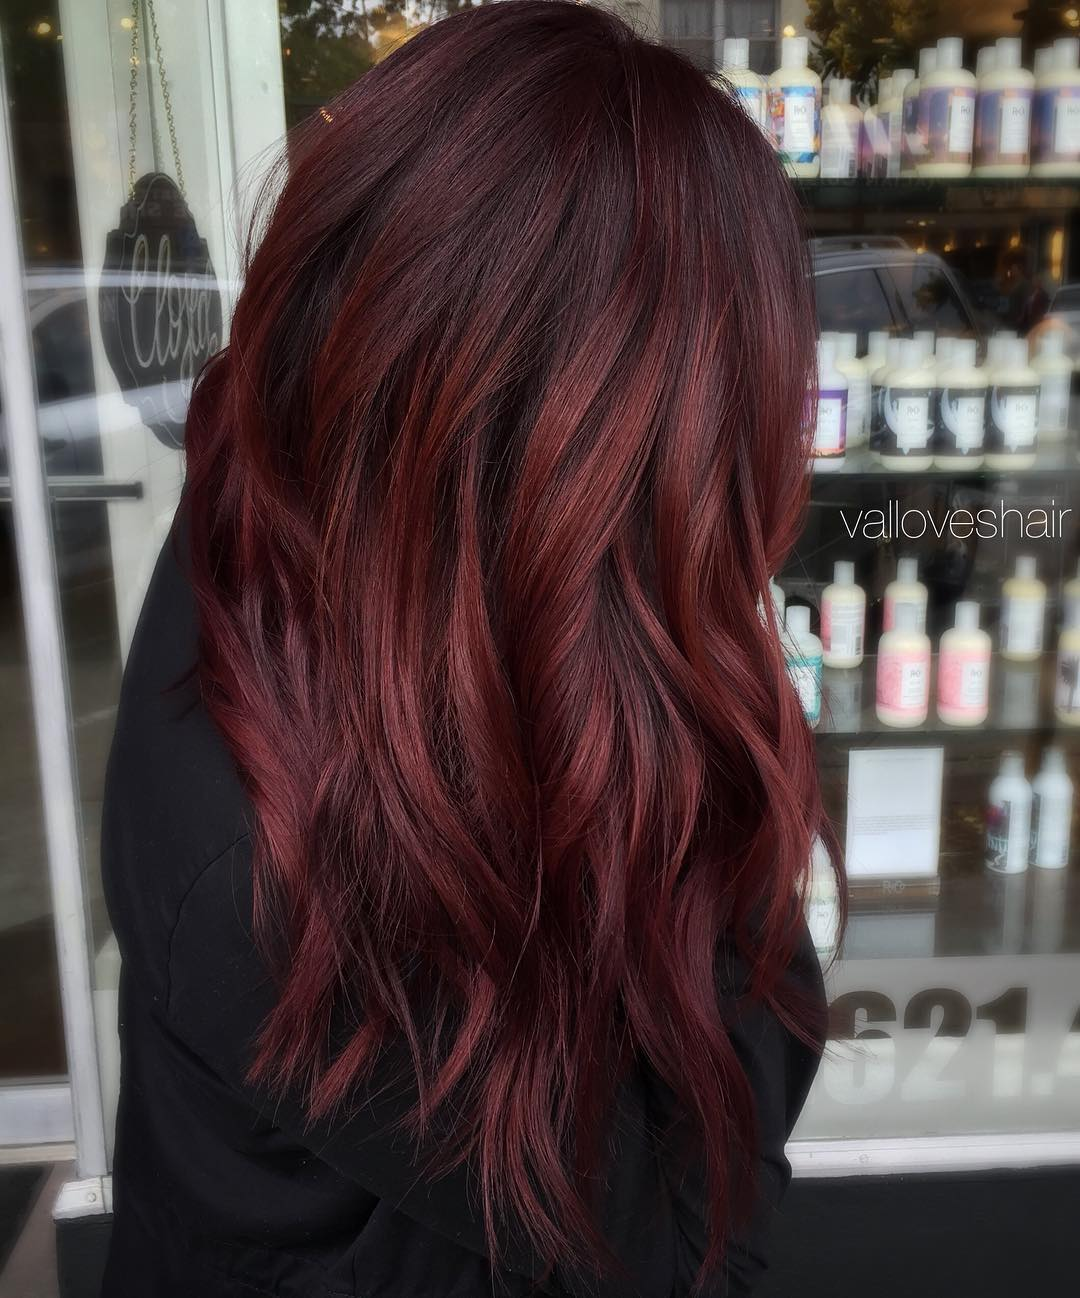 Shades Of Burgundy Hair Color Dark Maroon Burgundy Highlights - Hairstyles with dark brown and red